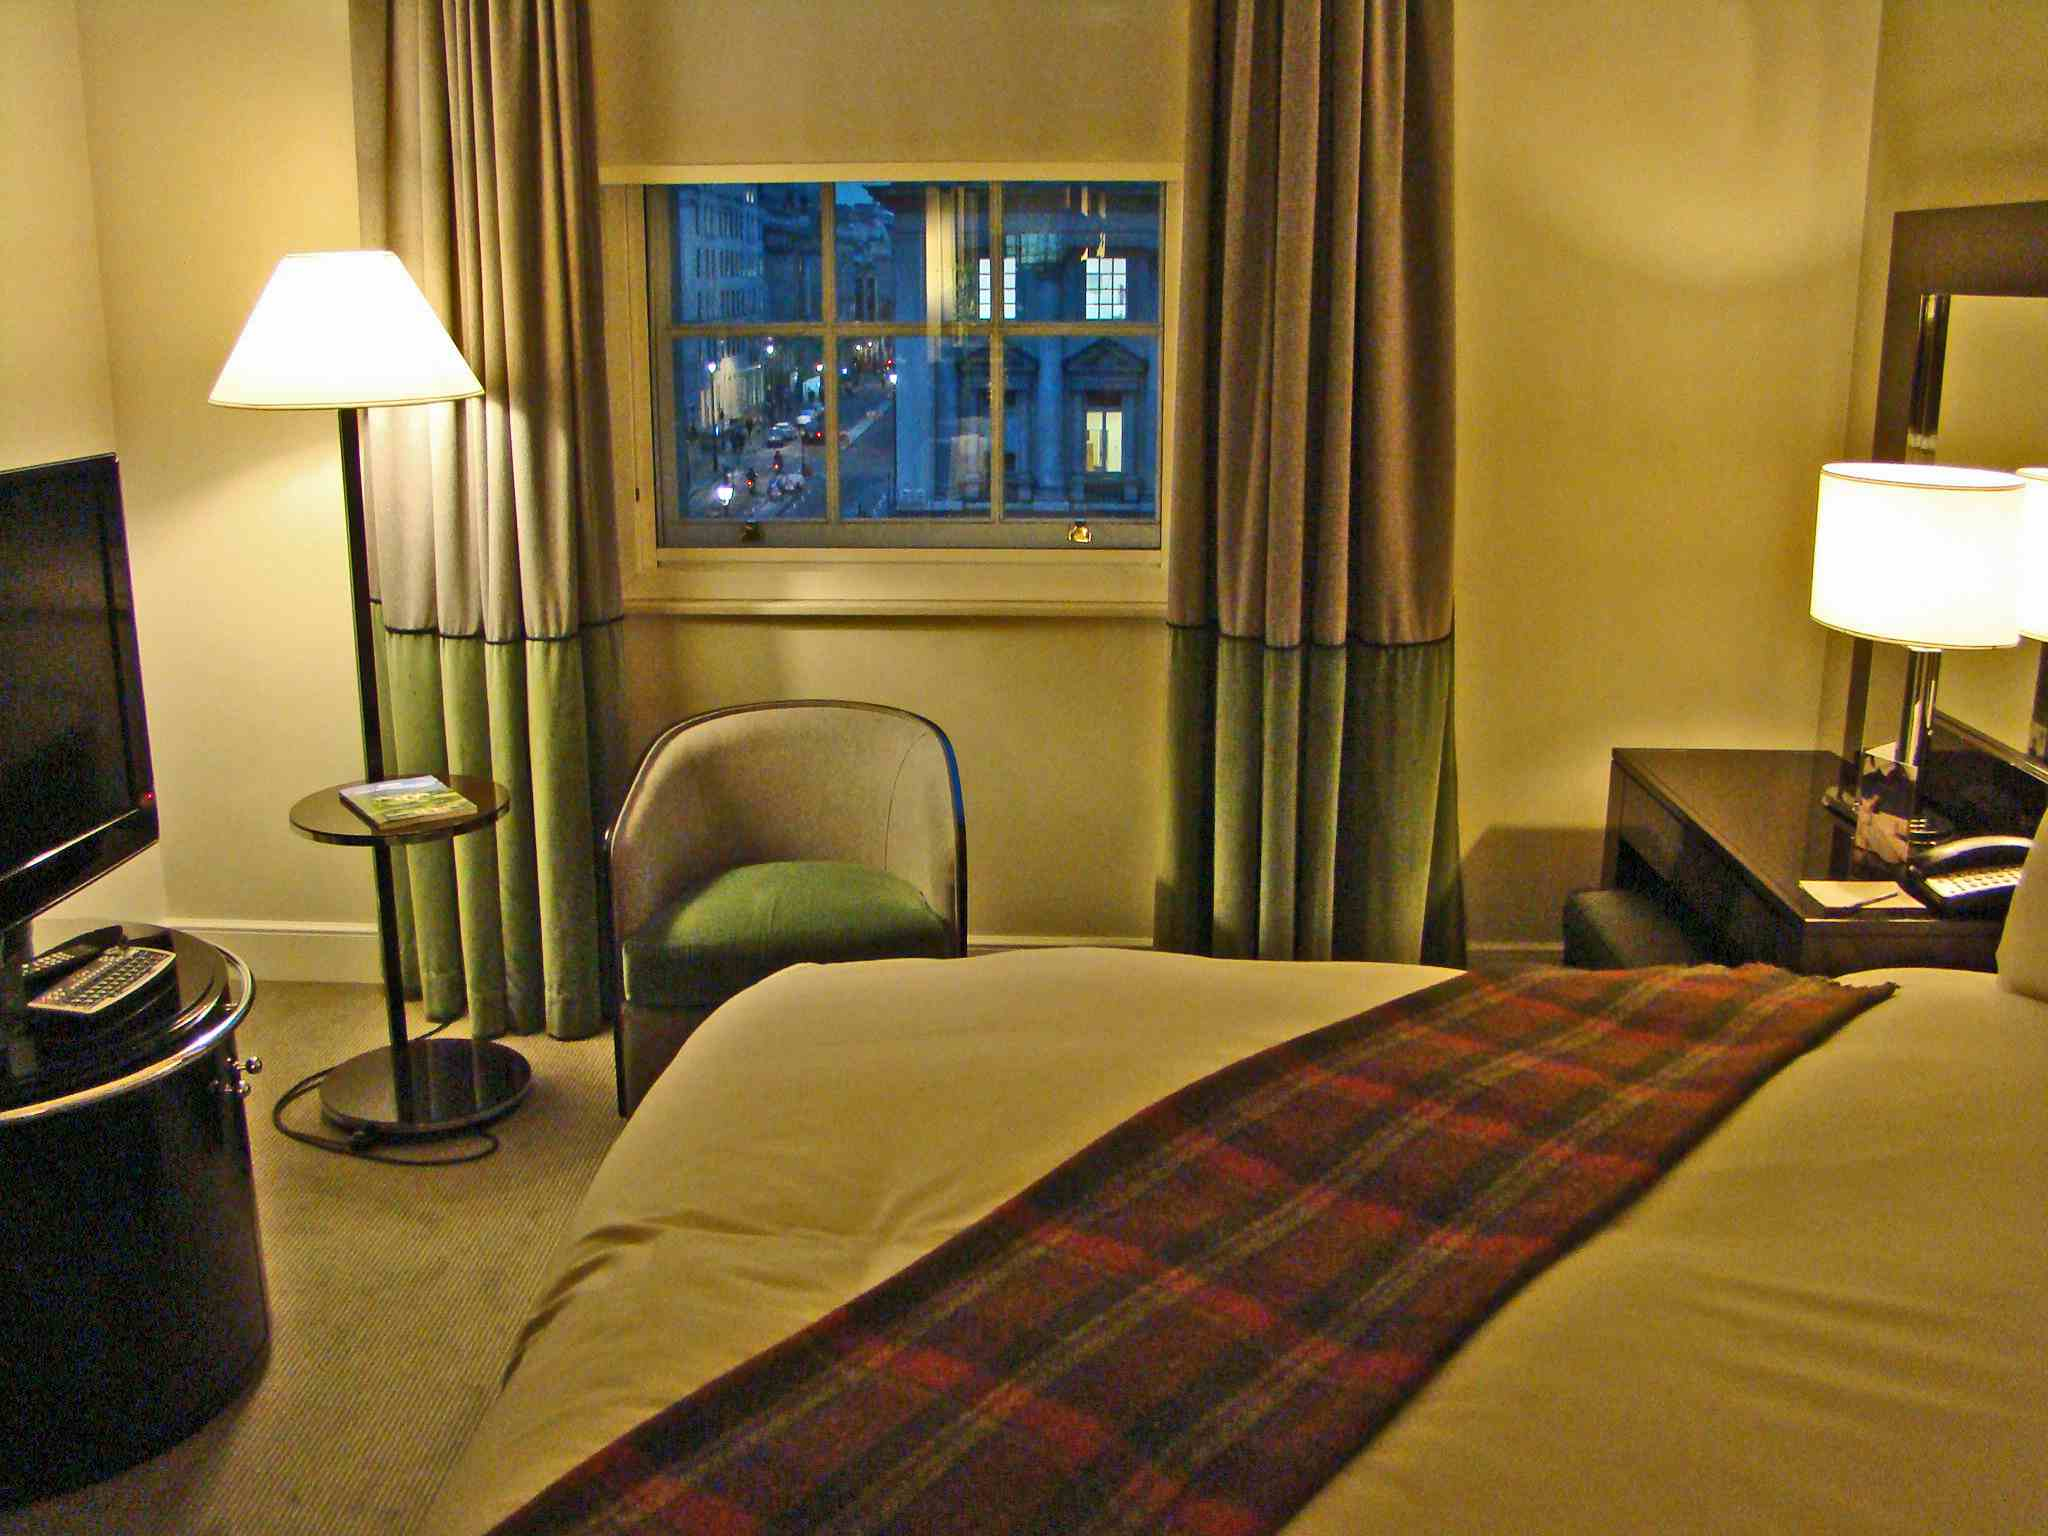 A hotel room in London